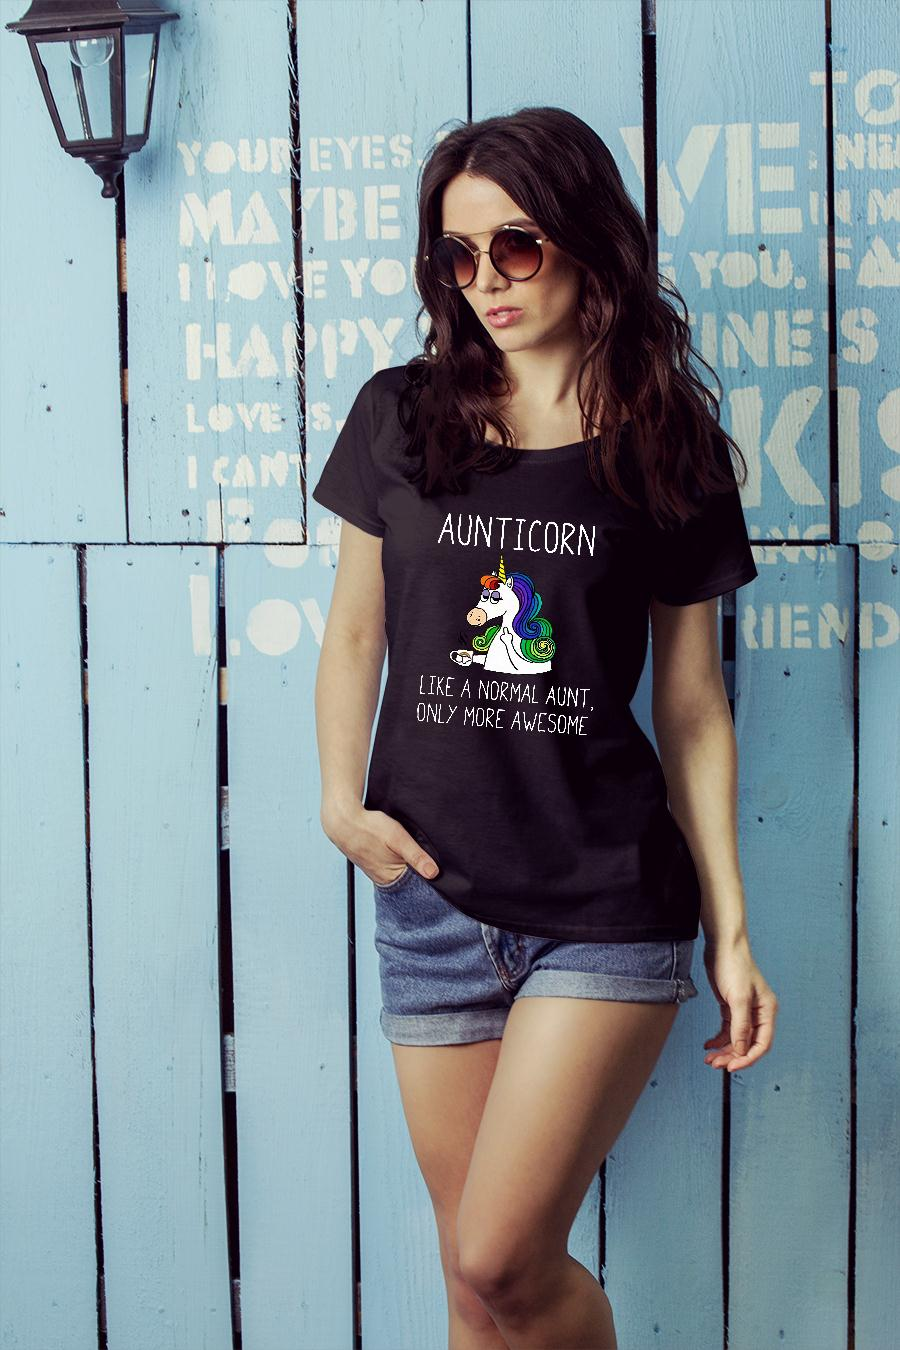 Unicorn Aunticorn like a normal aunt only more awesome shirt ladies tee official